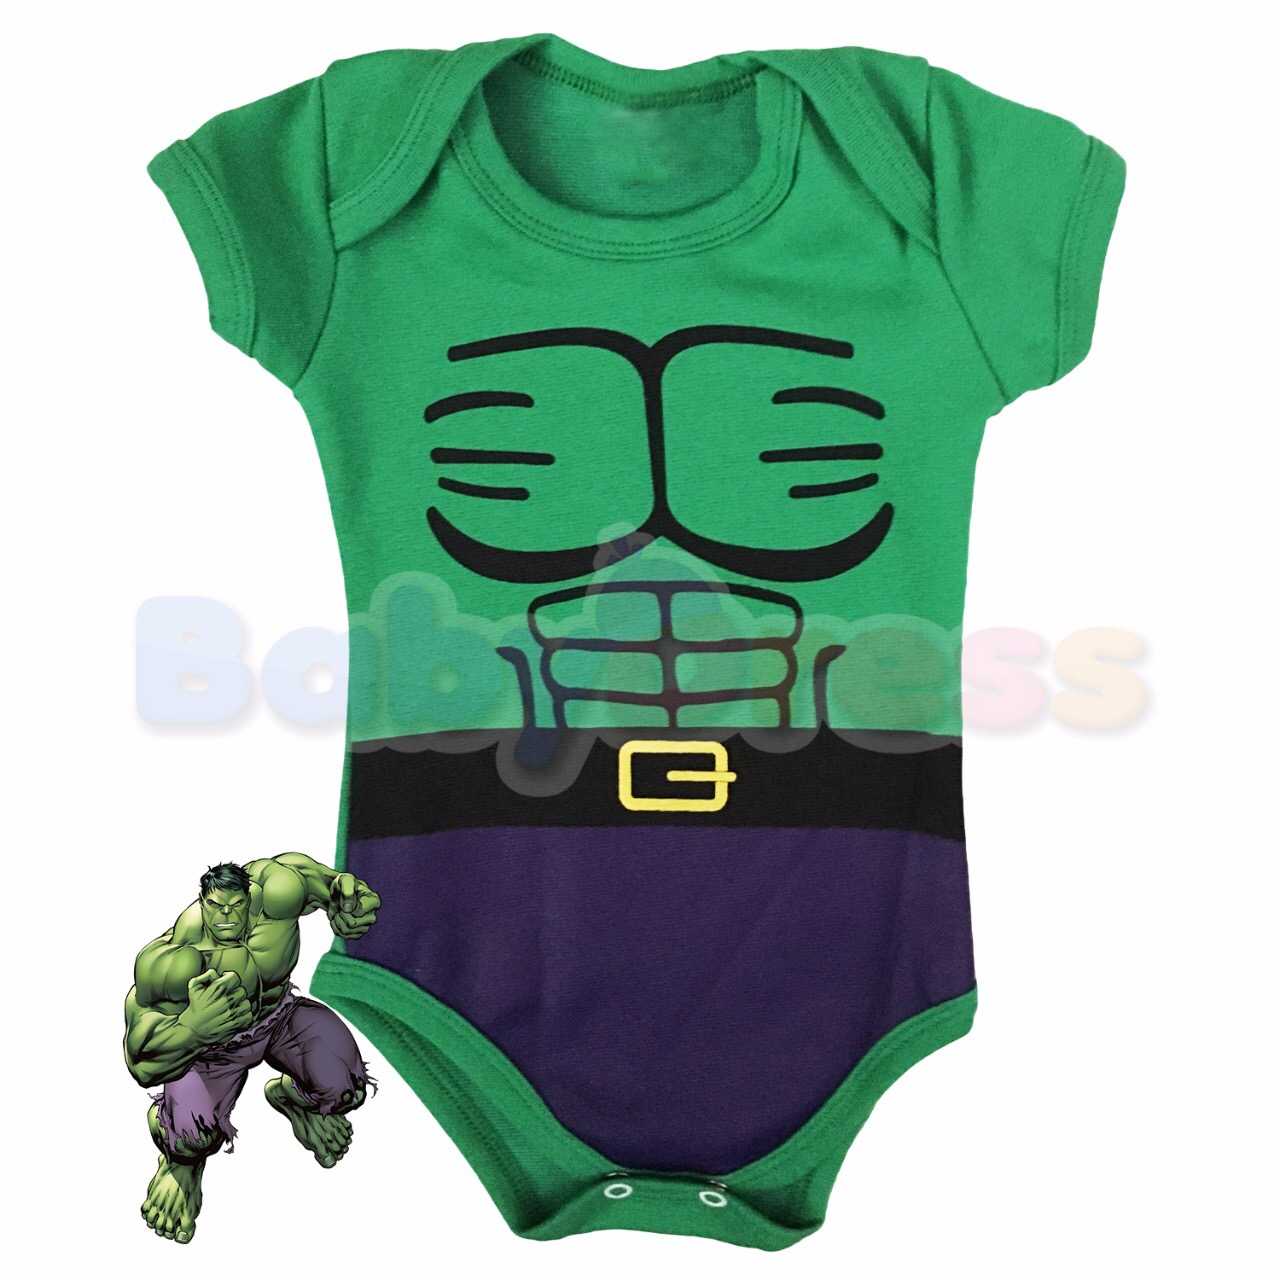 Incrivel Hulck Best body baby incrivel hulk | baby dress | elo7